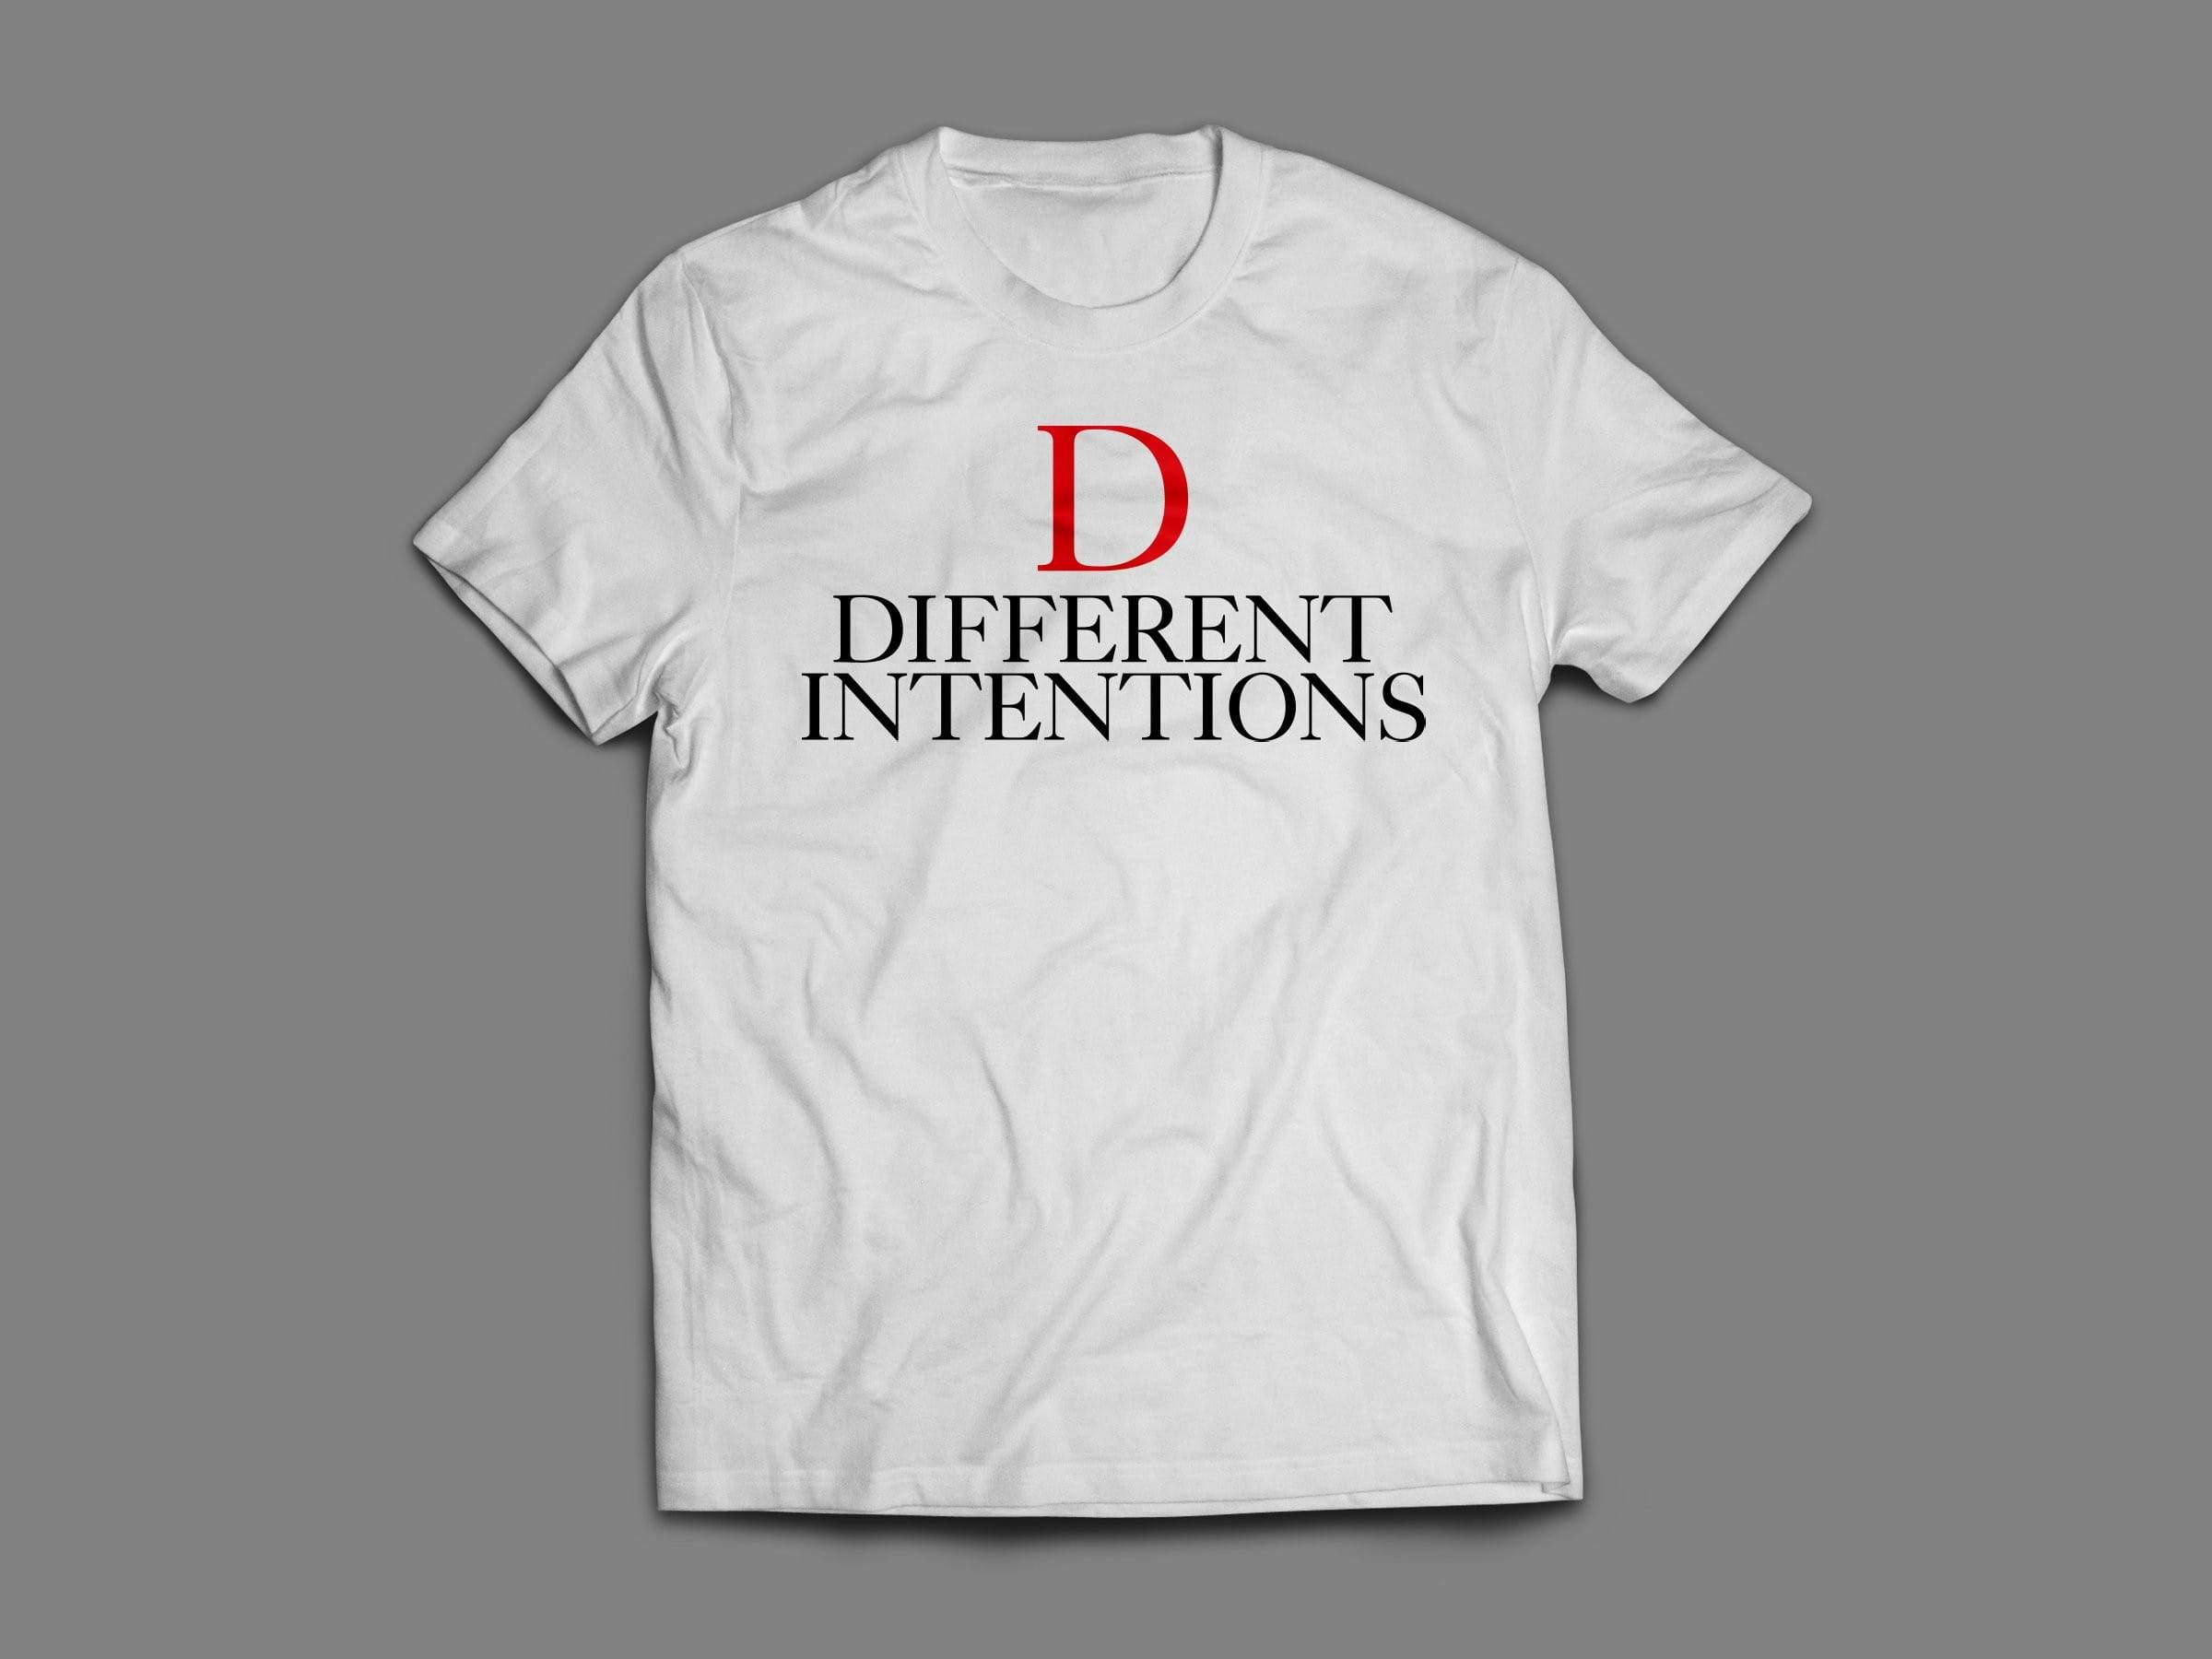 WHITE DTI RED D Short Sleeve Shirt - Different Intentions